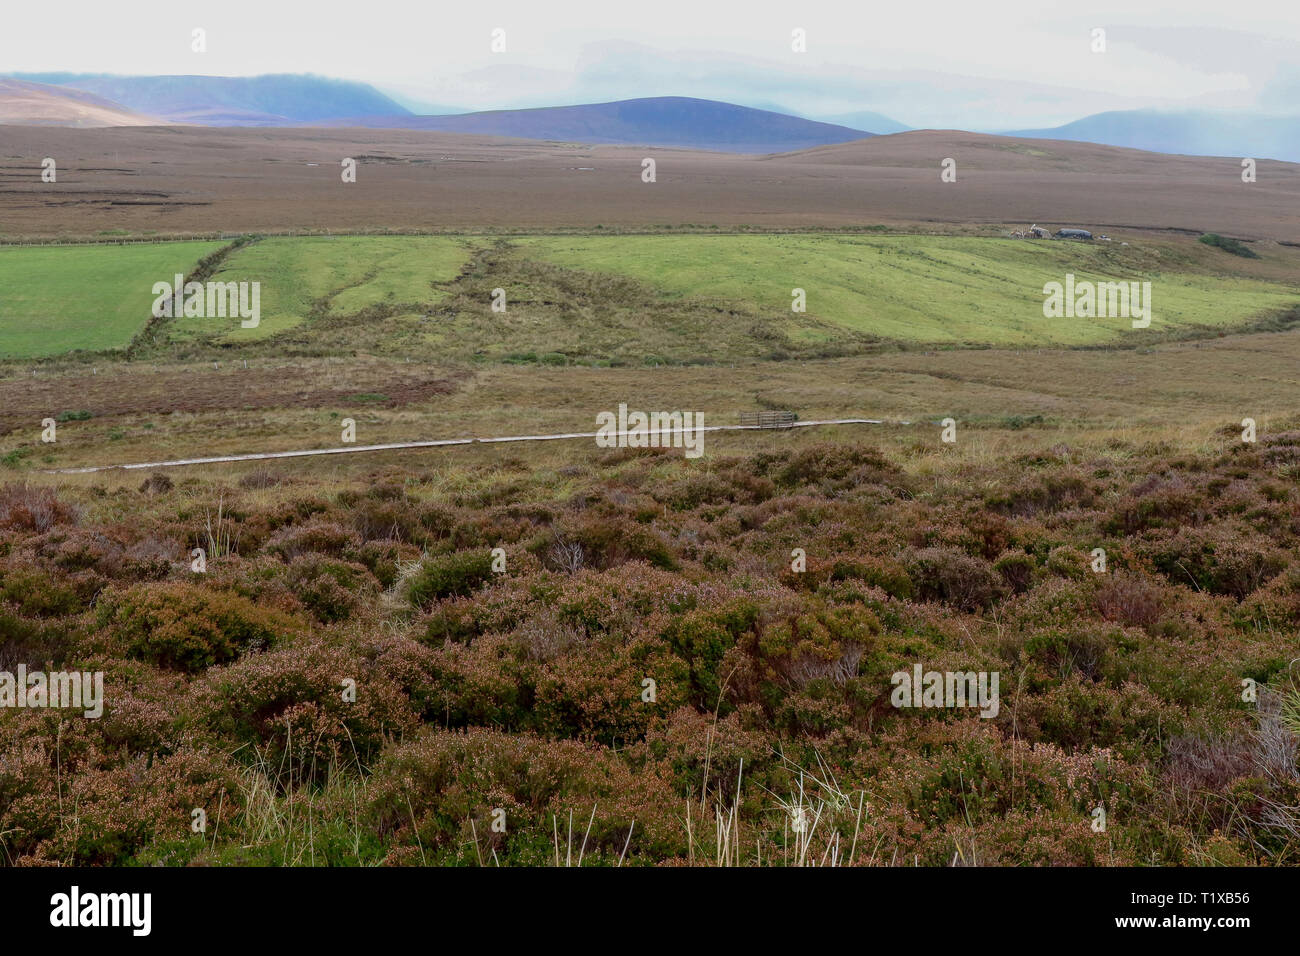 County Mayo landscape in the west of Ireland with a boardwalk visible in the Ballycroy National Park and the Nephin Beg mountains in the distance. Stock Photo